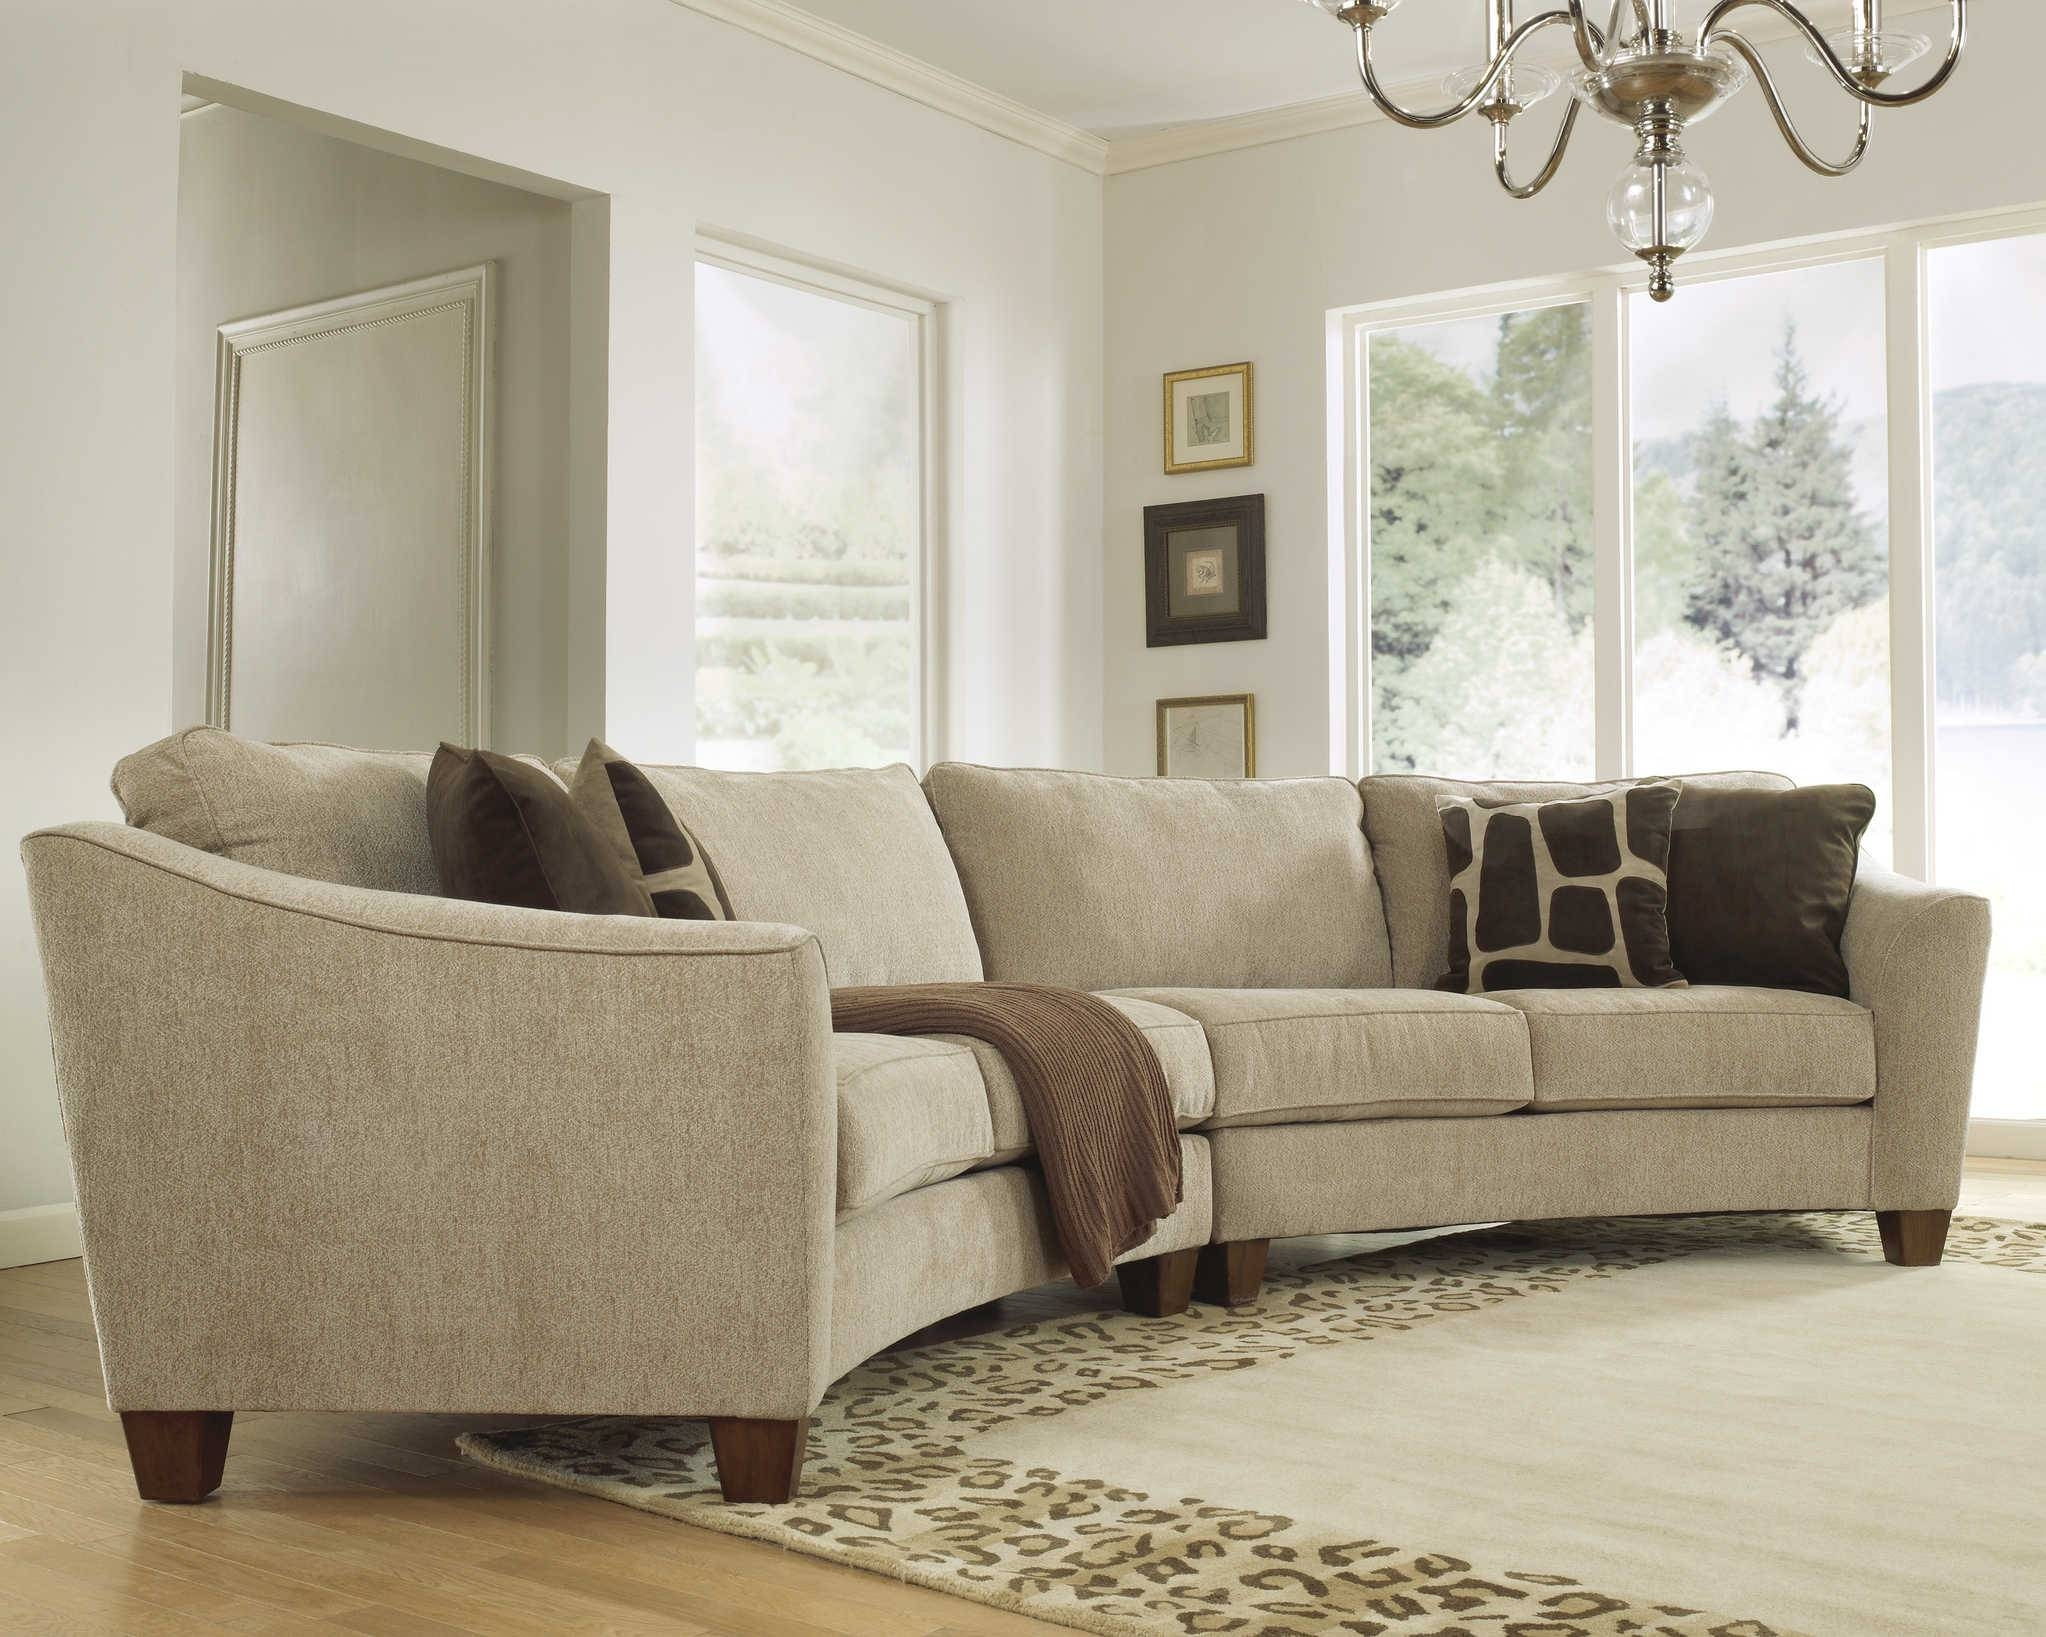 Contemporary Curved Sofa - Elliots Better Homes Gardens Ideas pertaining to Contemporary Curved Sofas (Image 3 of 30)